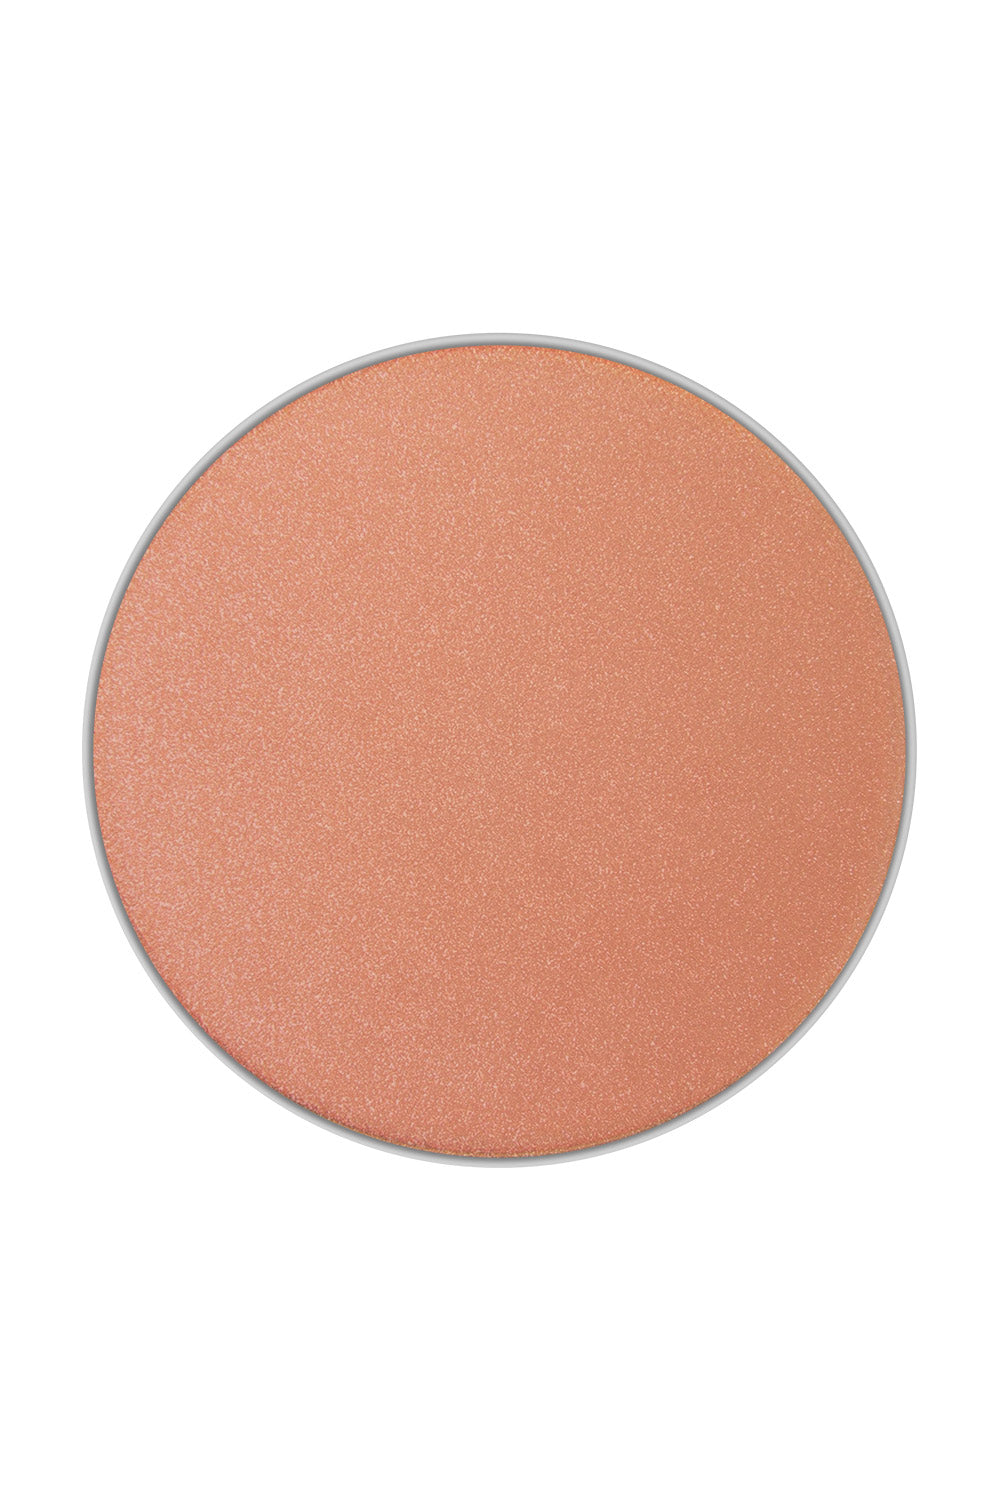 Type 2 Blush Pan - Zen